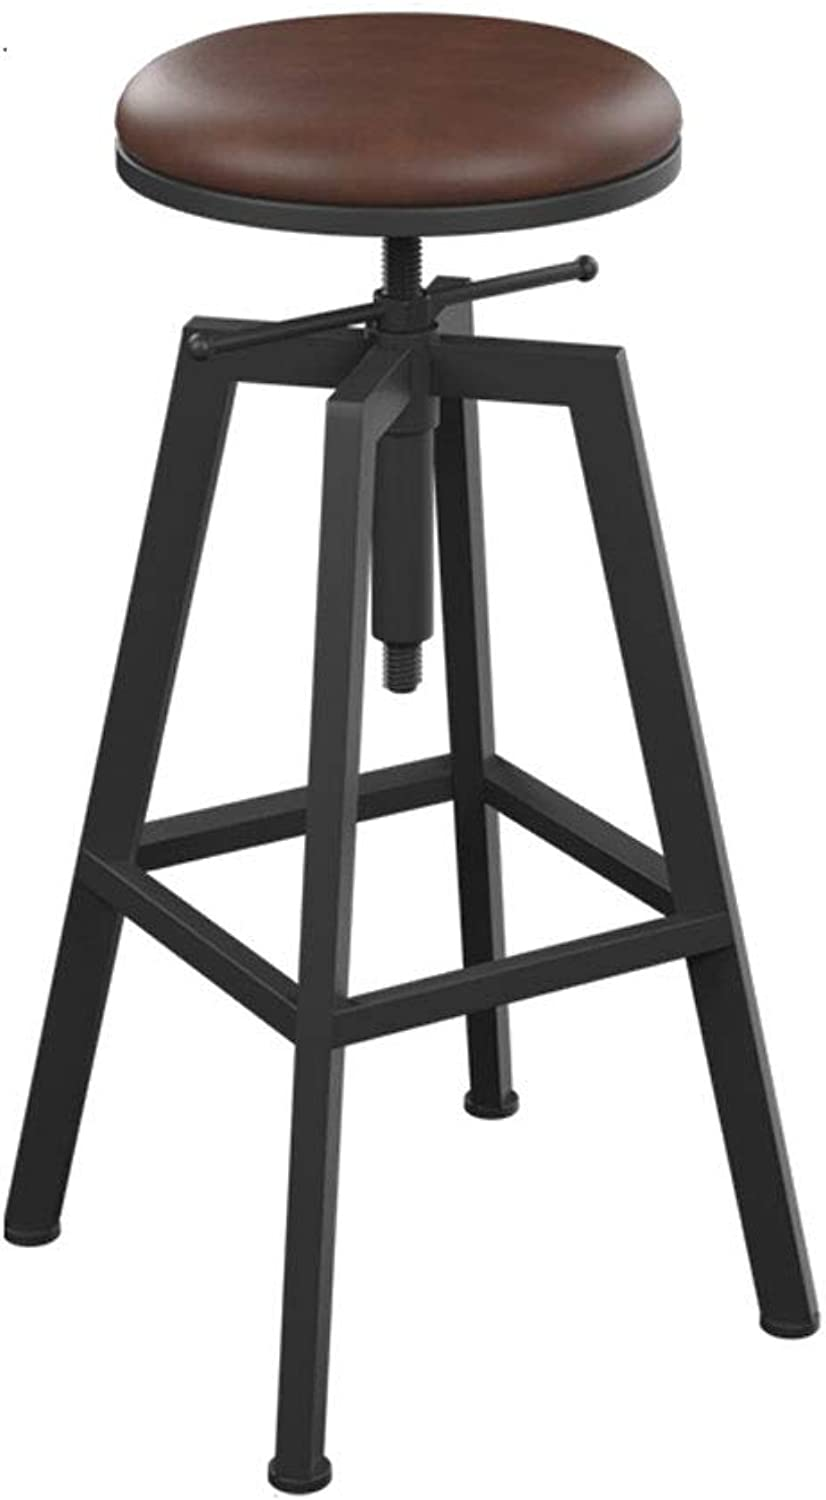 Barstools Iron Dining stools, Creative bar stools redating Adjustable Lift Retro loft PU Leather Upholstered high Chair,Iron Frame Base,Suitable for Kitchen bar Cafe Restaurant. Counter Height Swivel